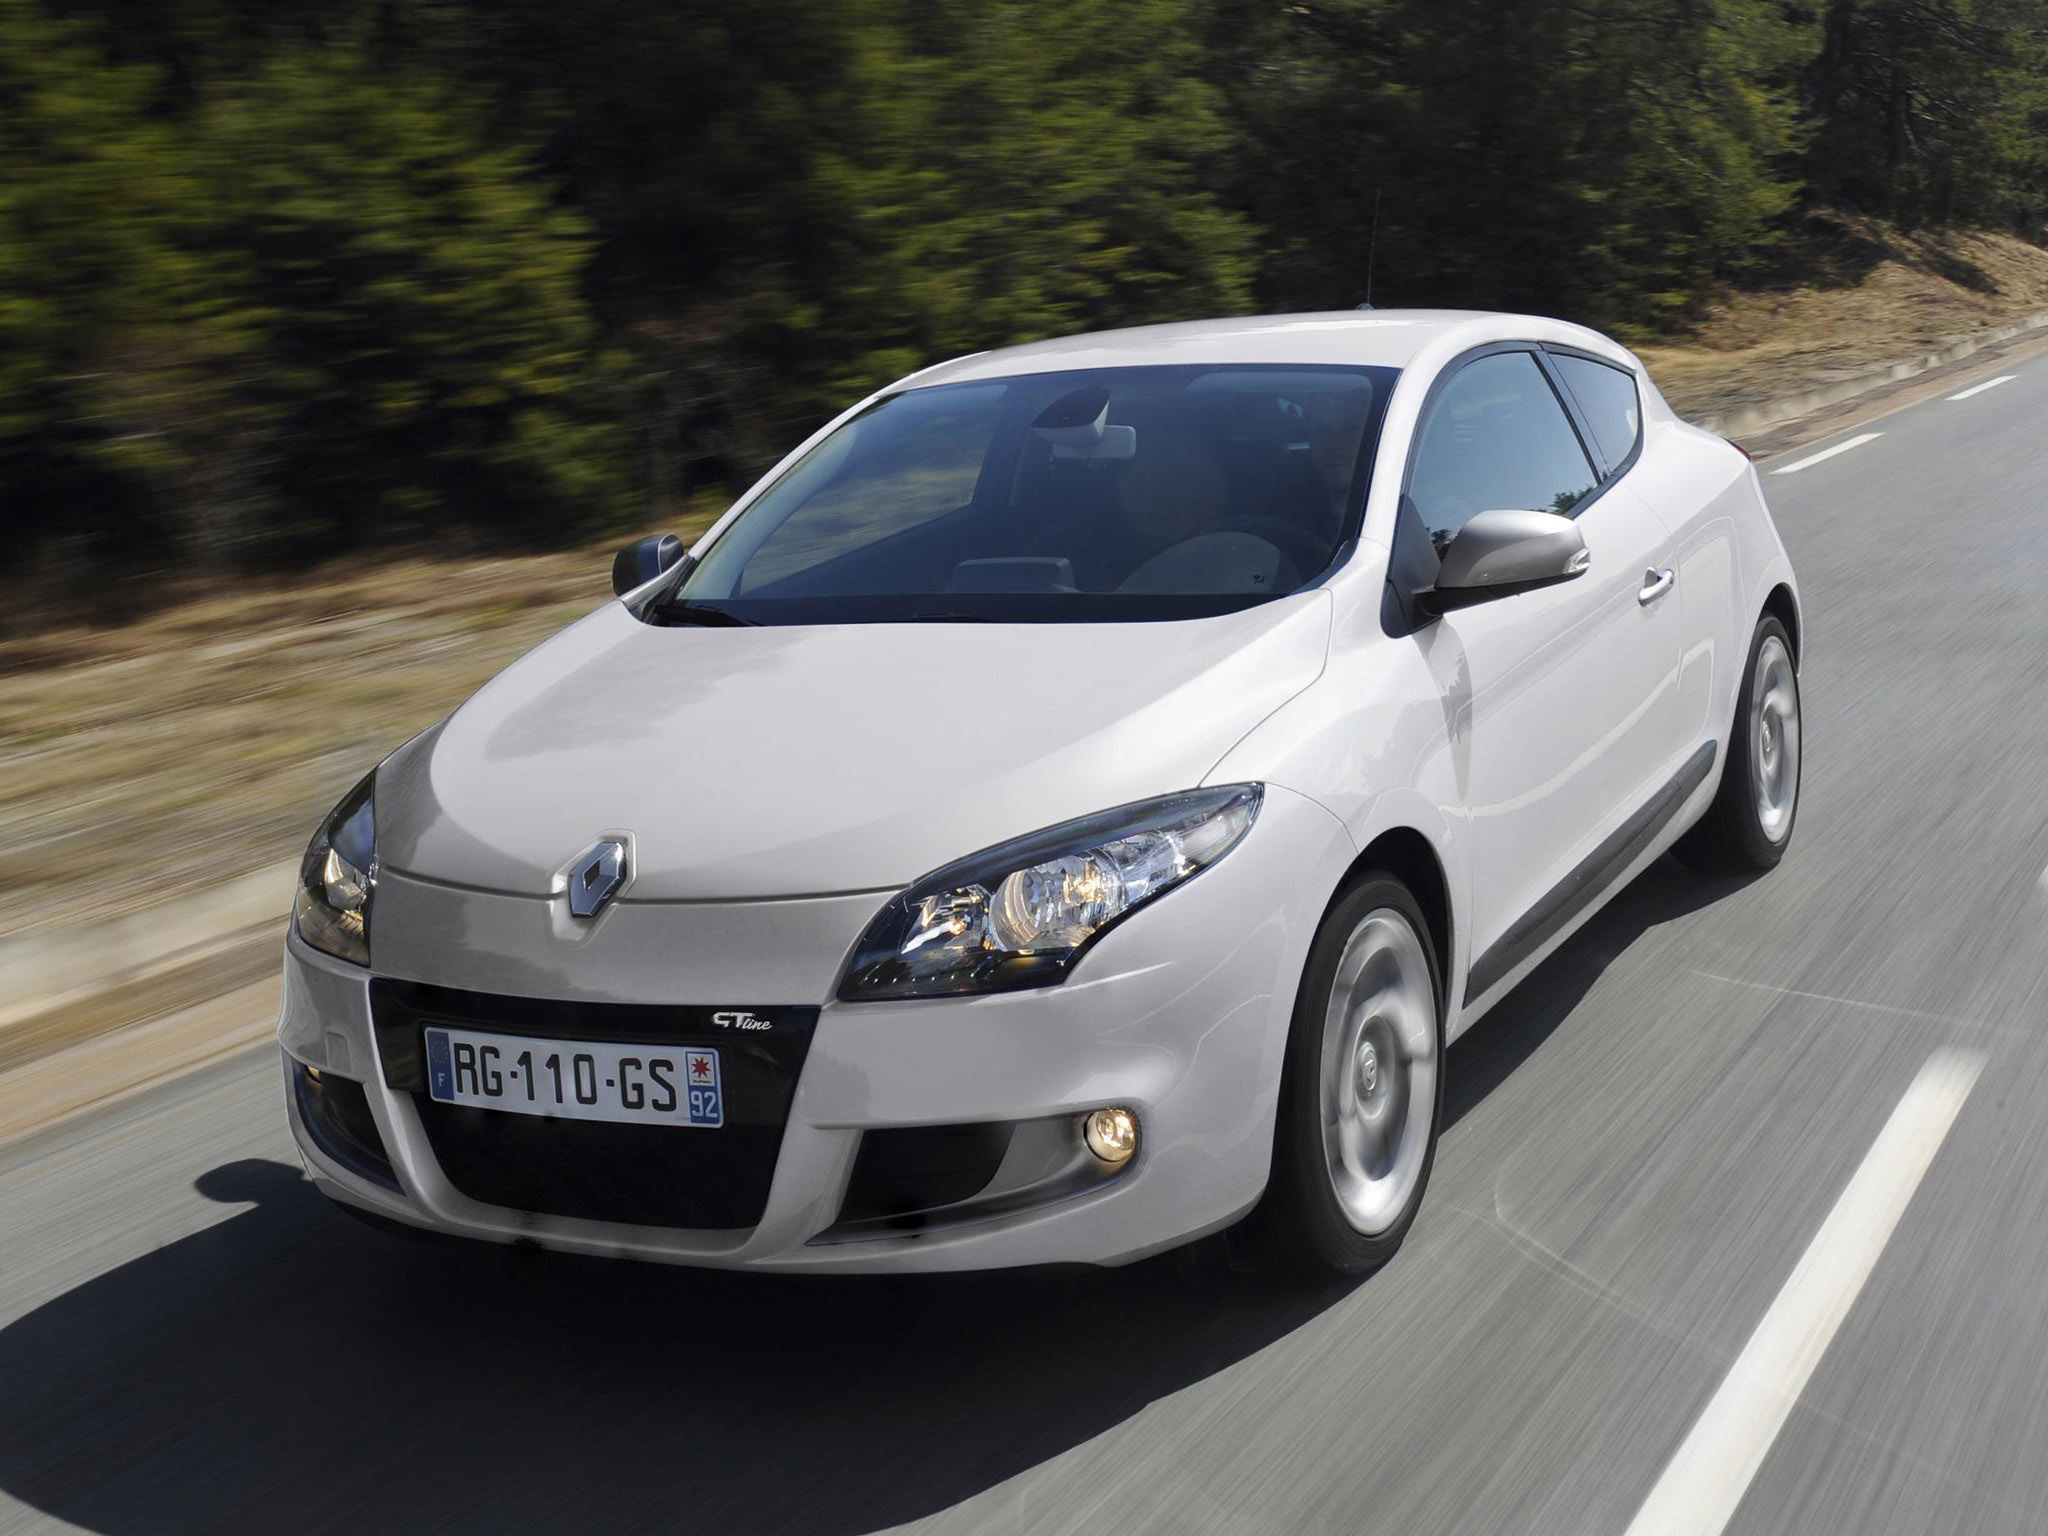 renault megane coupe gt line 2010 renault megane coupe gt line 2010 photo 03 car in pictures. Black Bedroom Furniture Sets. Home Design Ideas